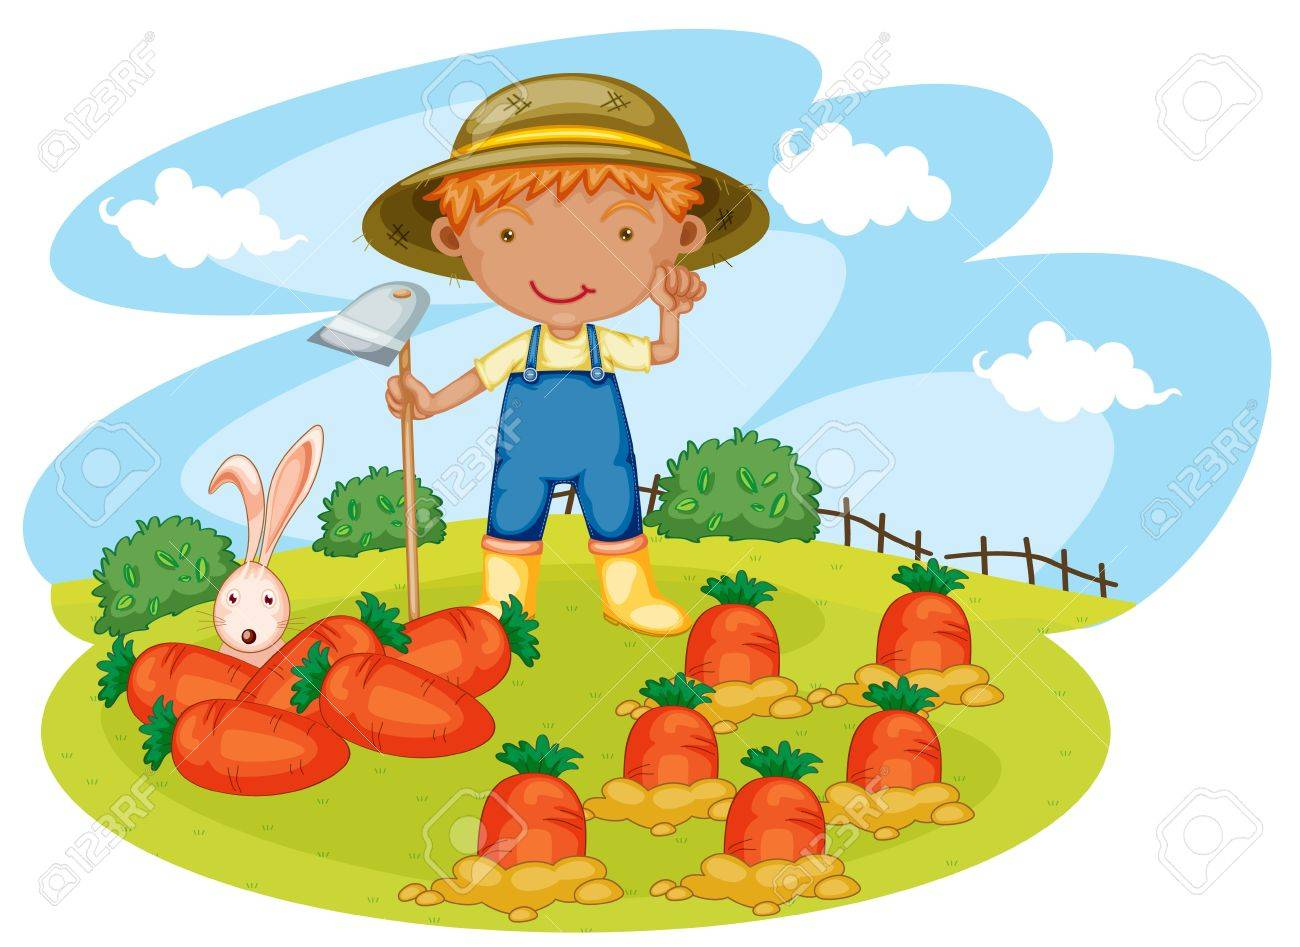 Illustration Of A Boy Working In Farms